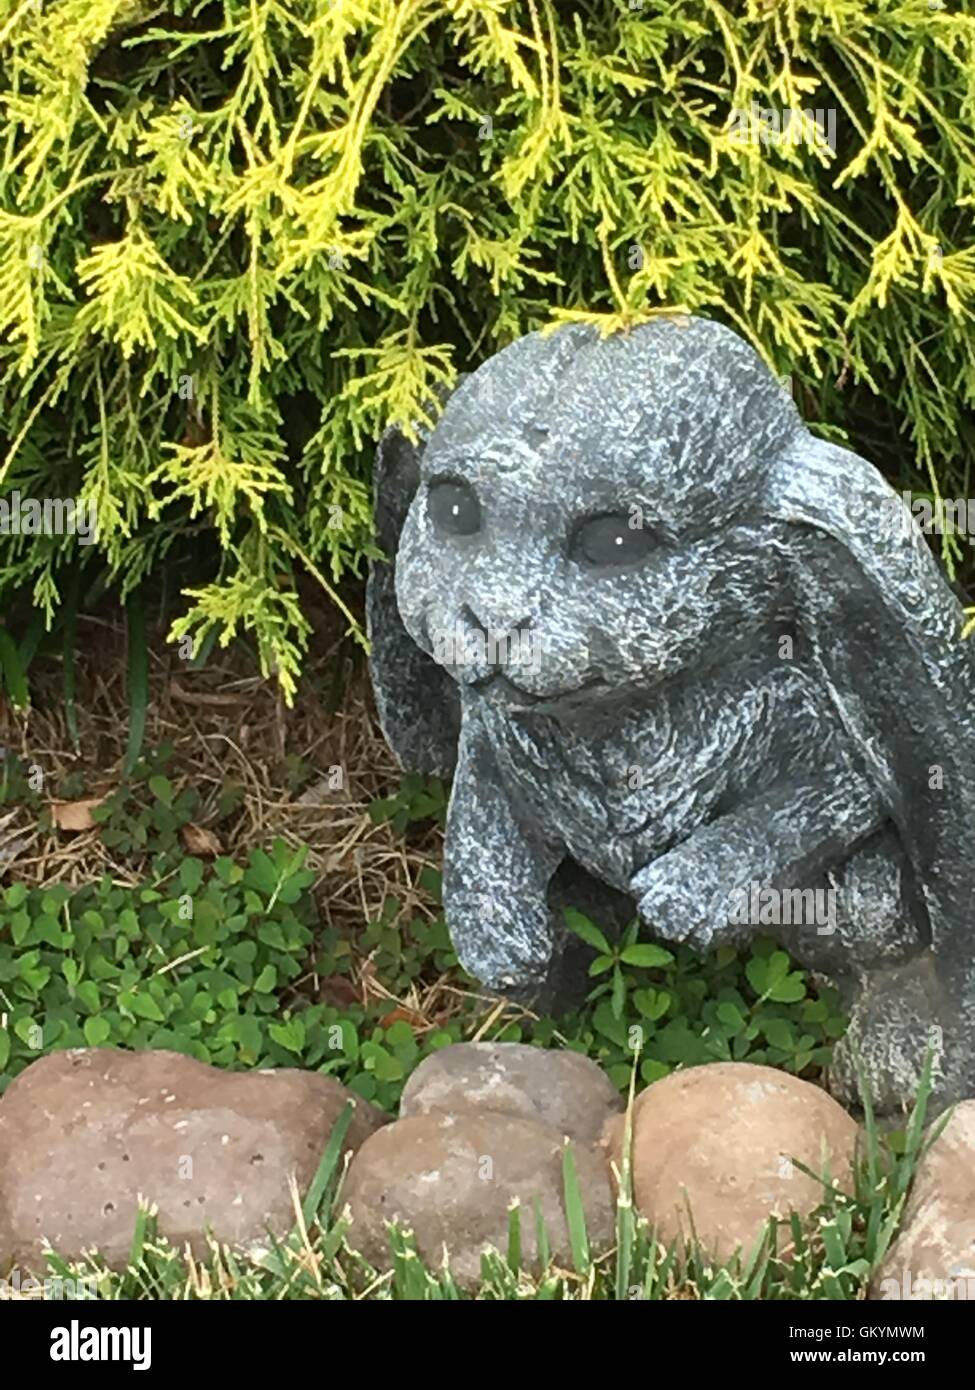 Stone Rabbit in front of Gold Mop cypress - Stock Image